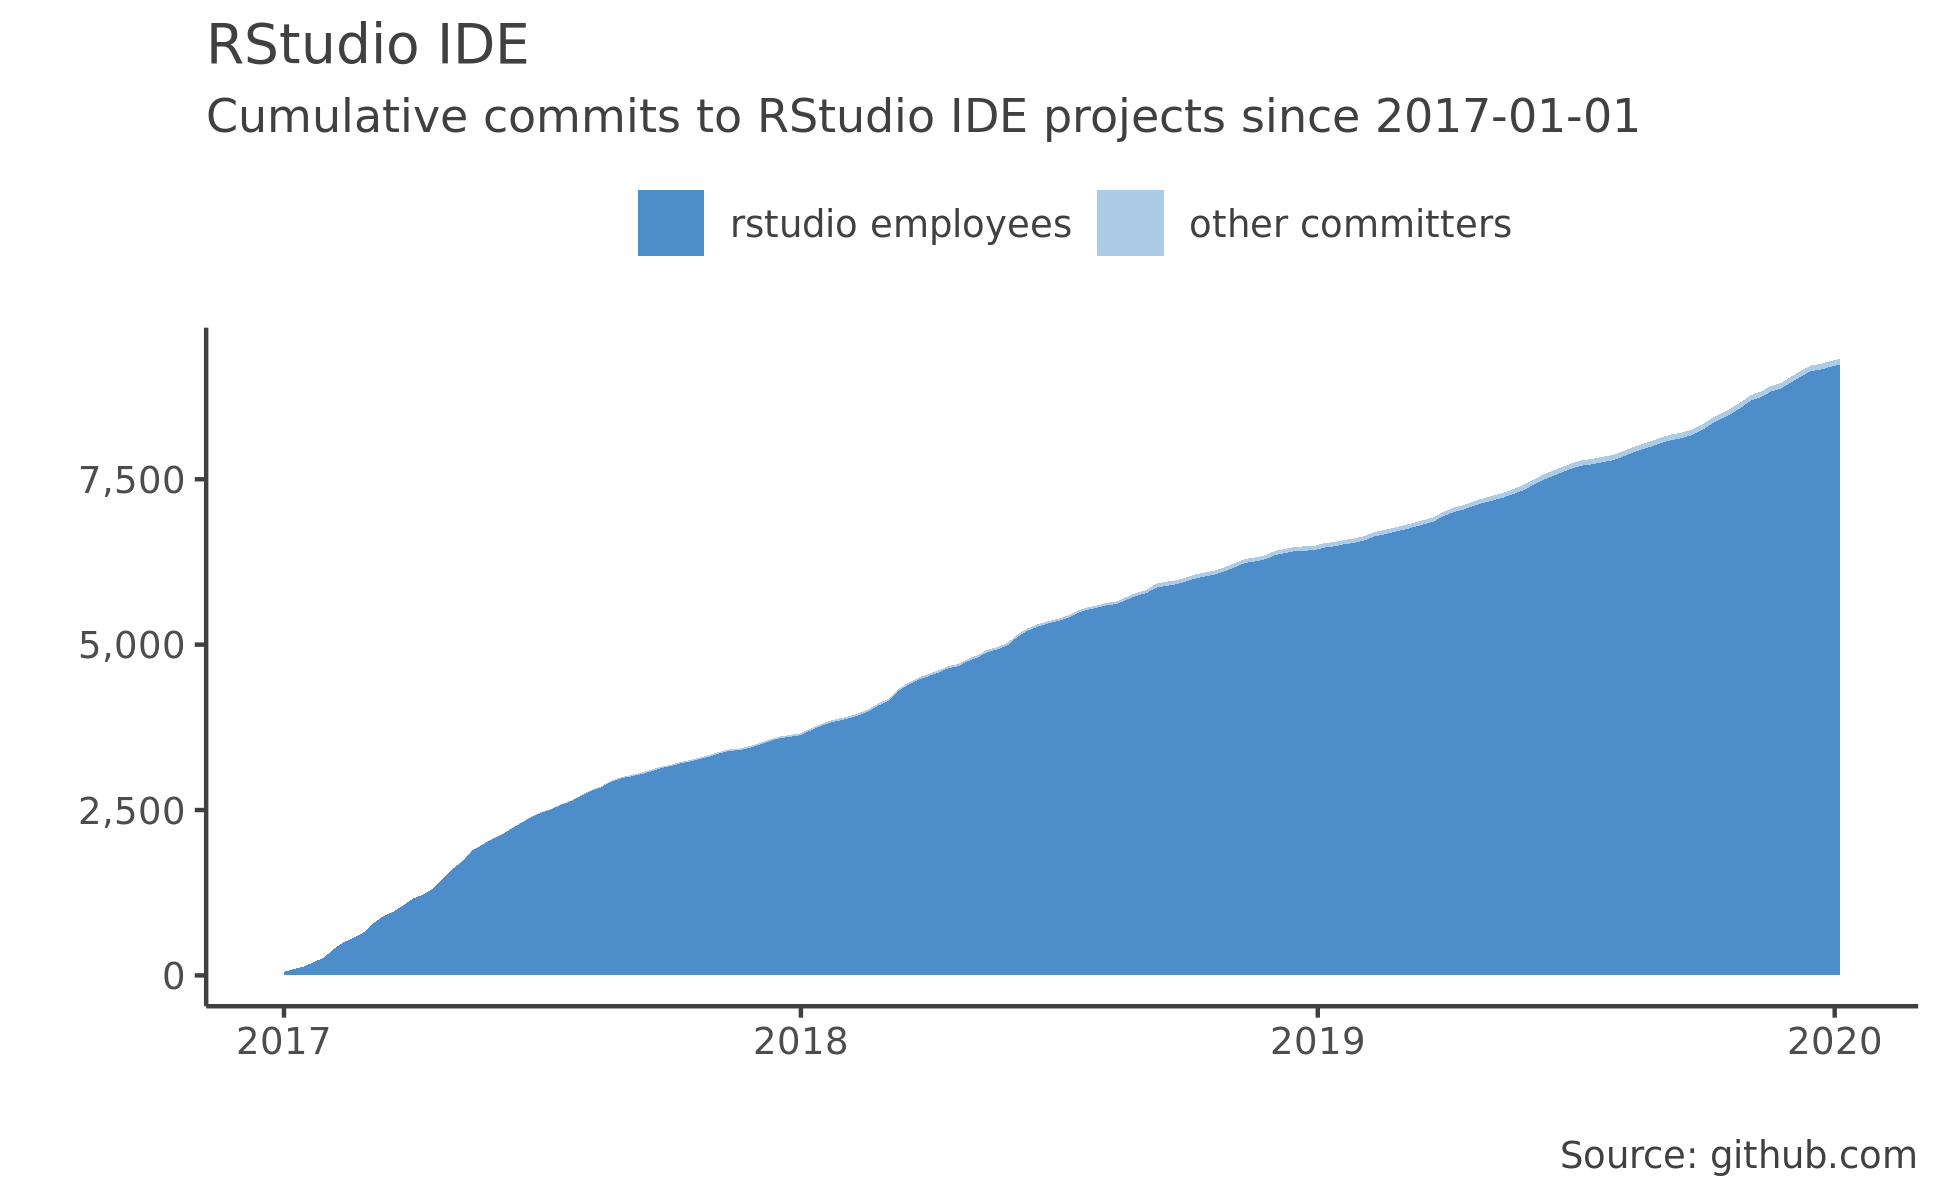 RStudio Integrated Development Environment